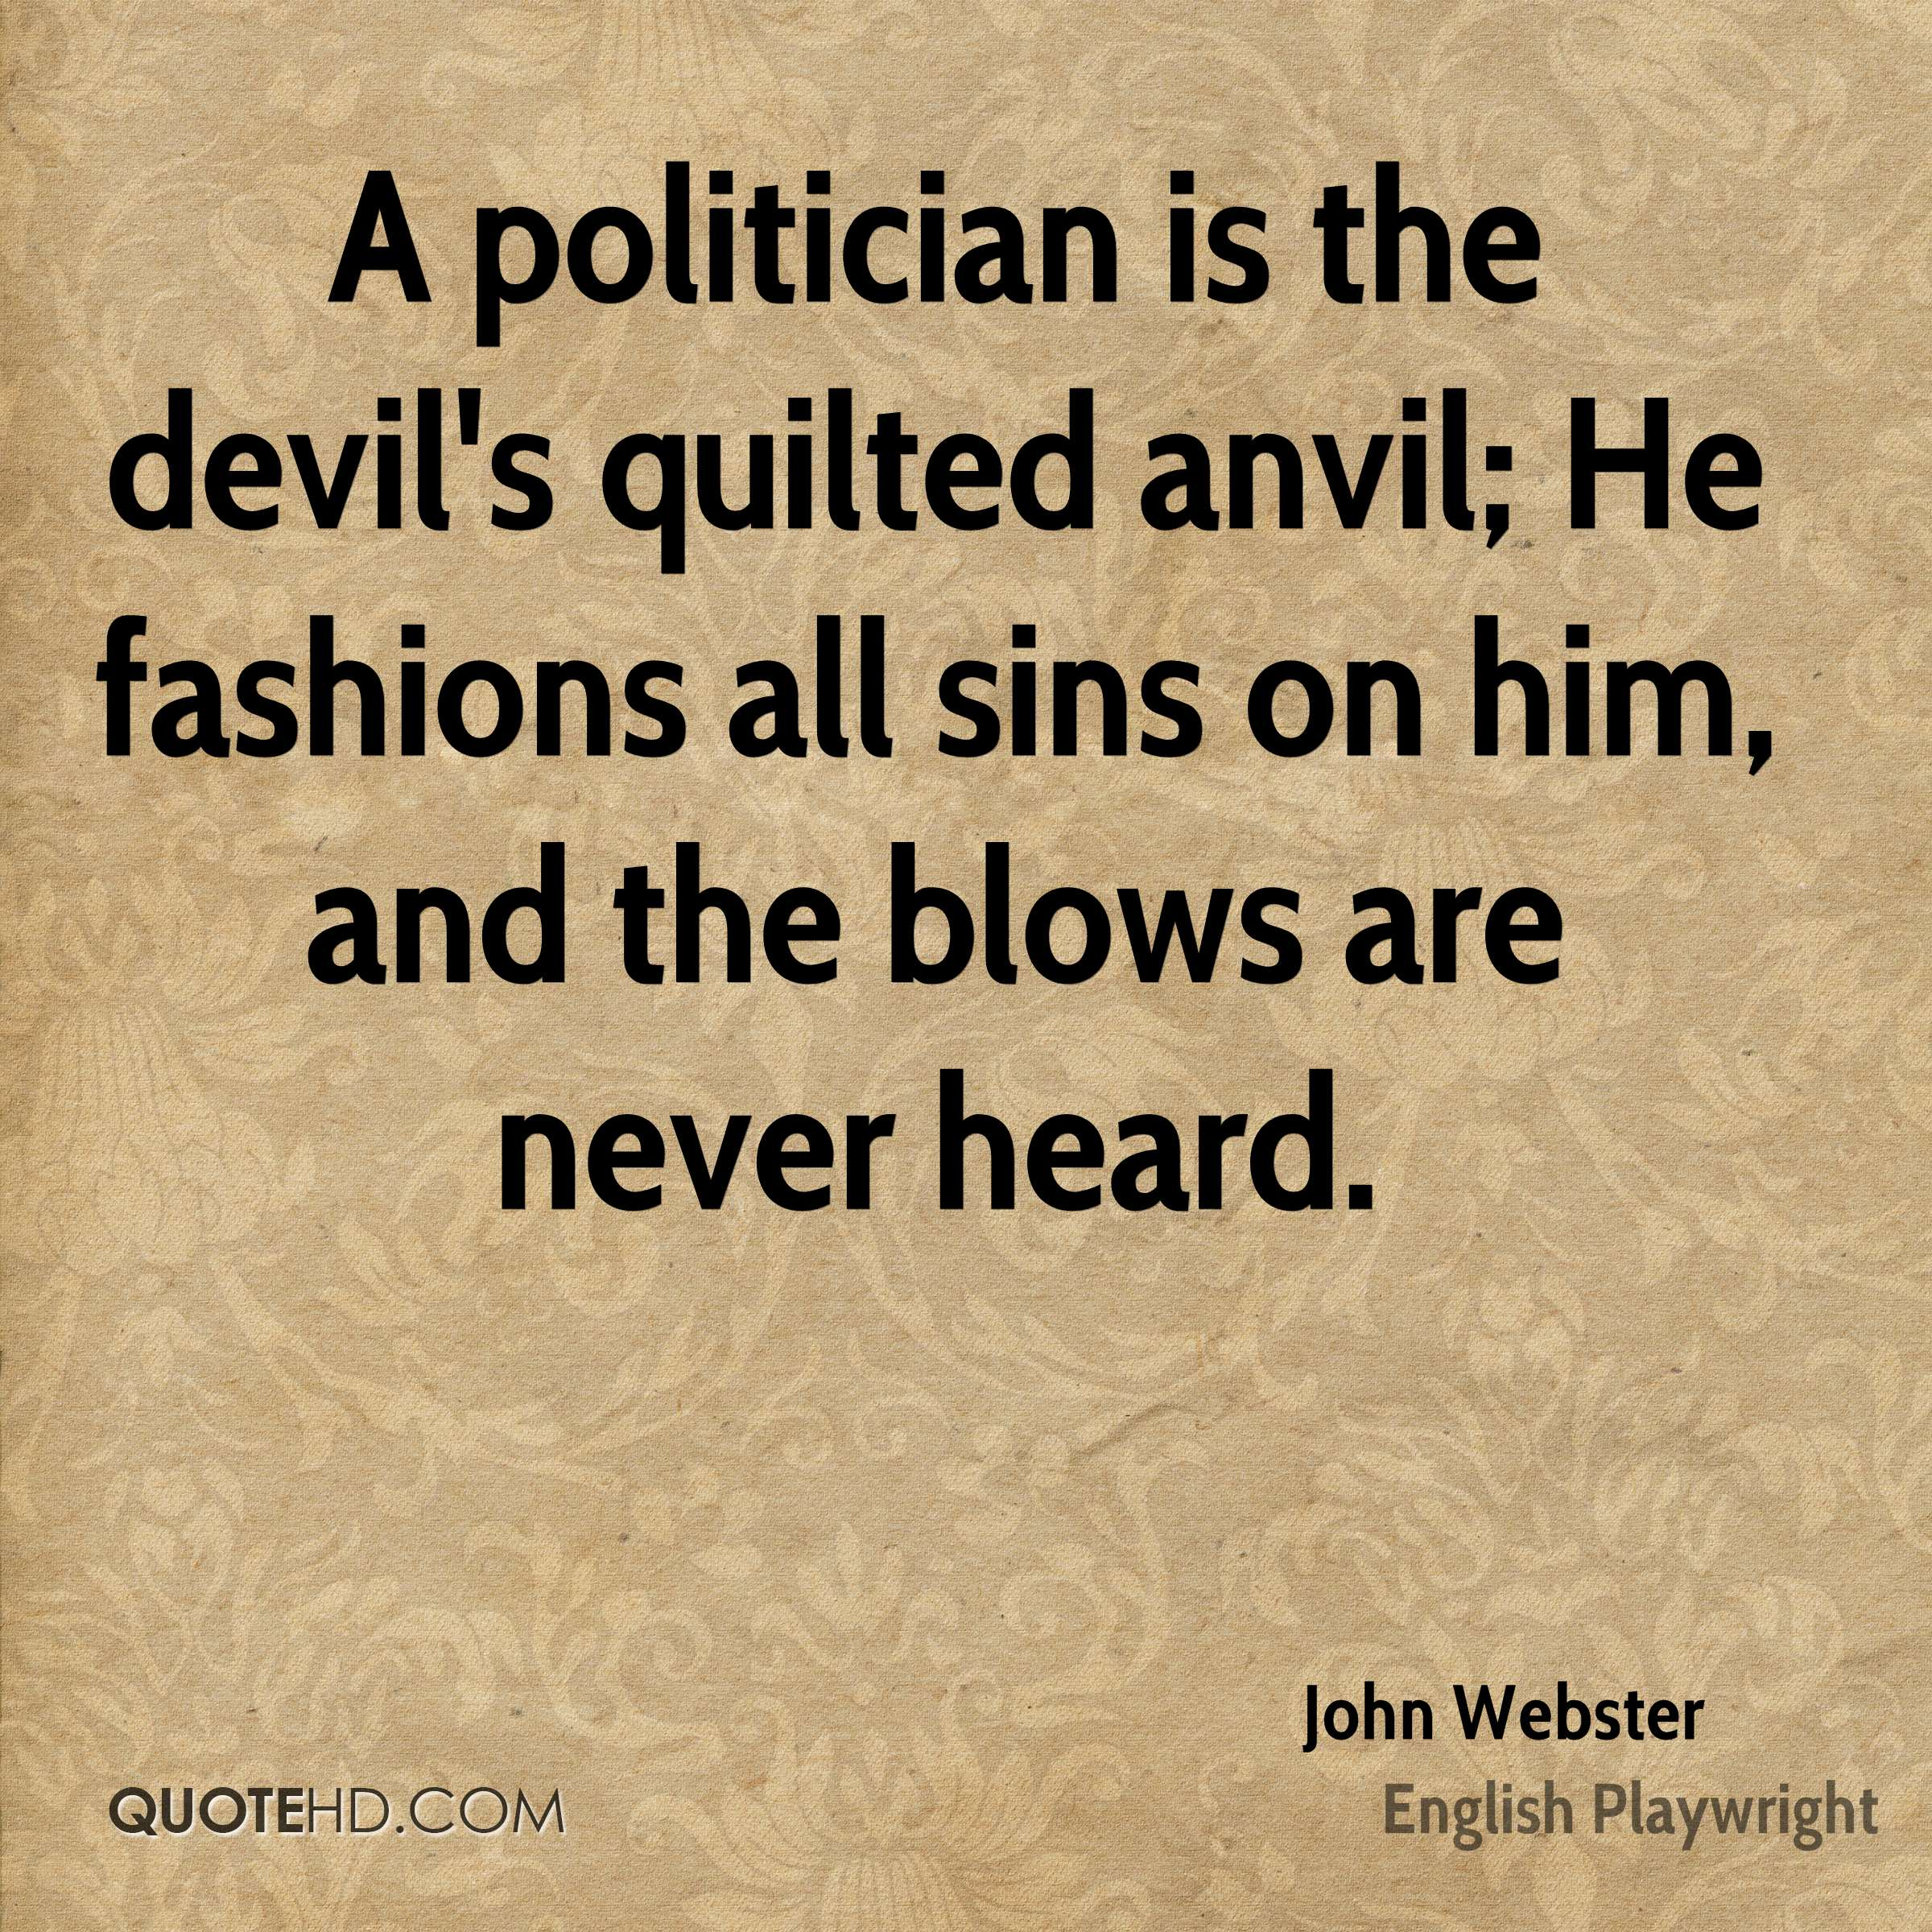 A politician is the devil's quilted anvil; He fashions all sins on him, and the blows are never heard.